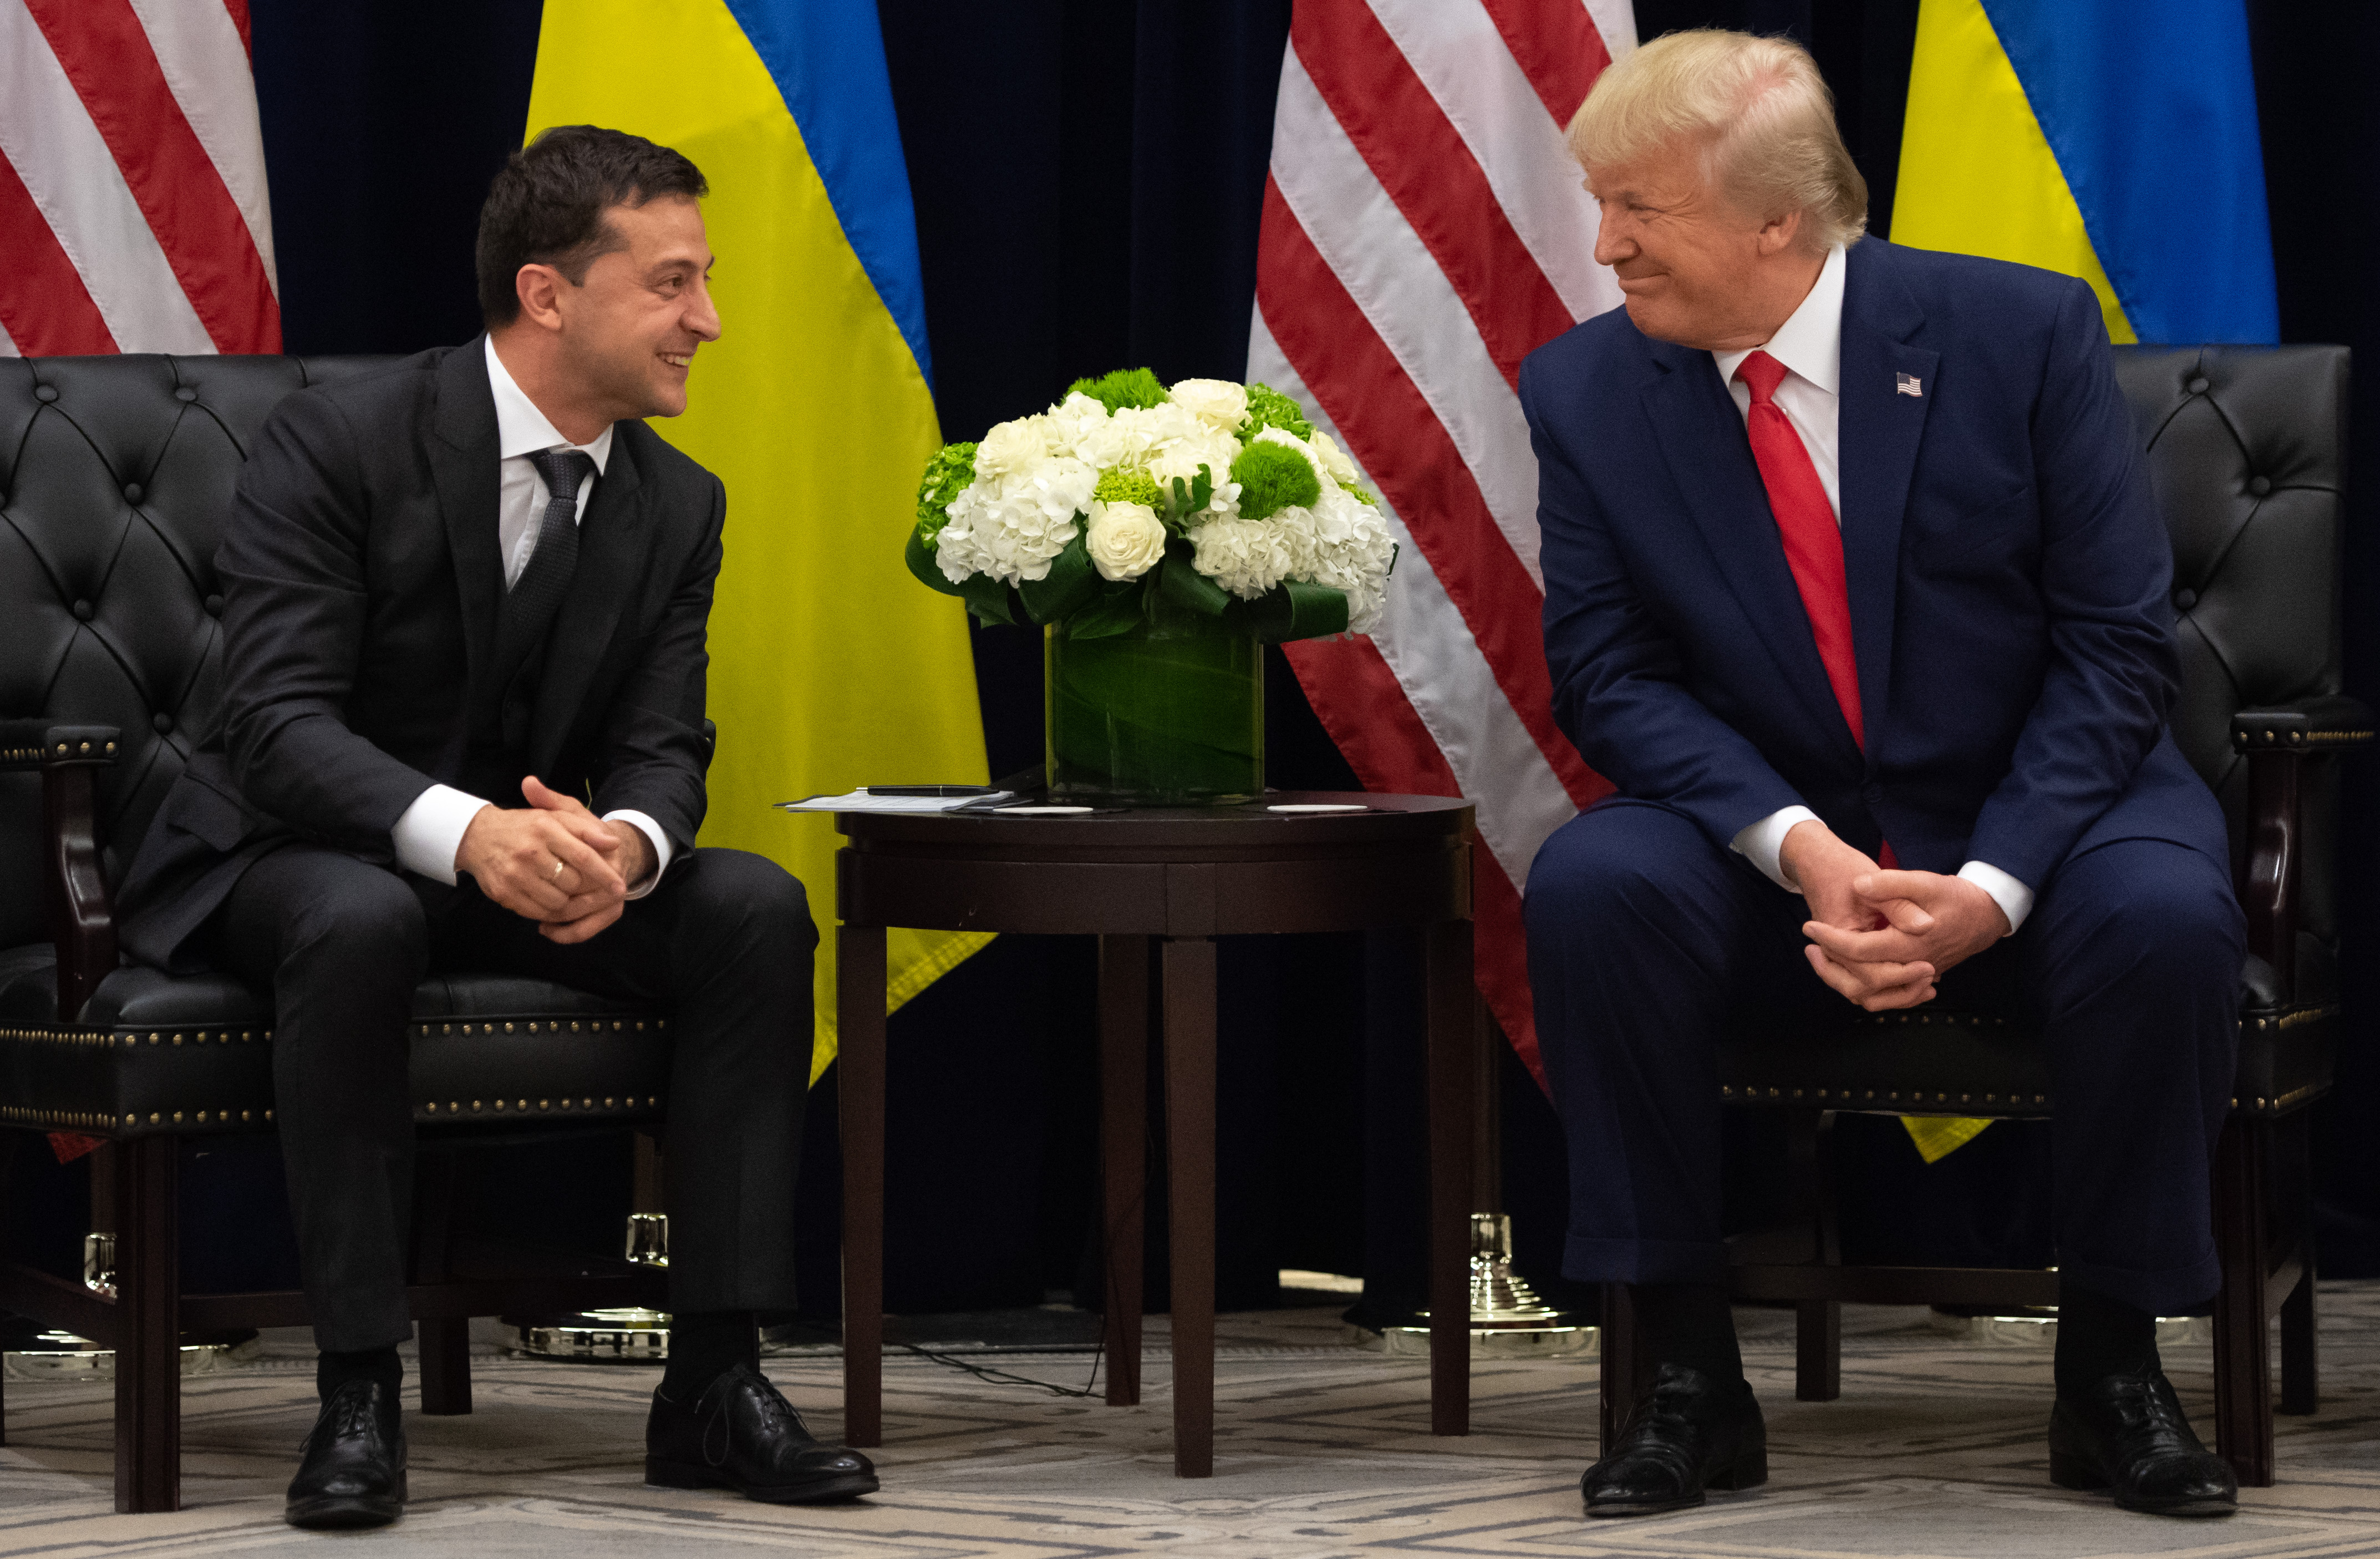 Letter Shows Trump Offered Zelensky a White House Visit With No Conditions, Campaign Says